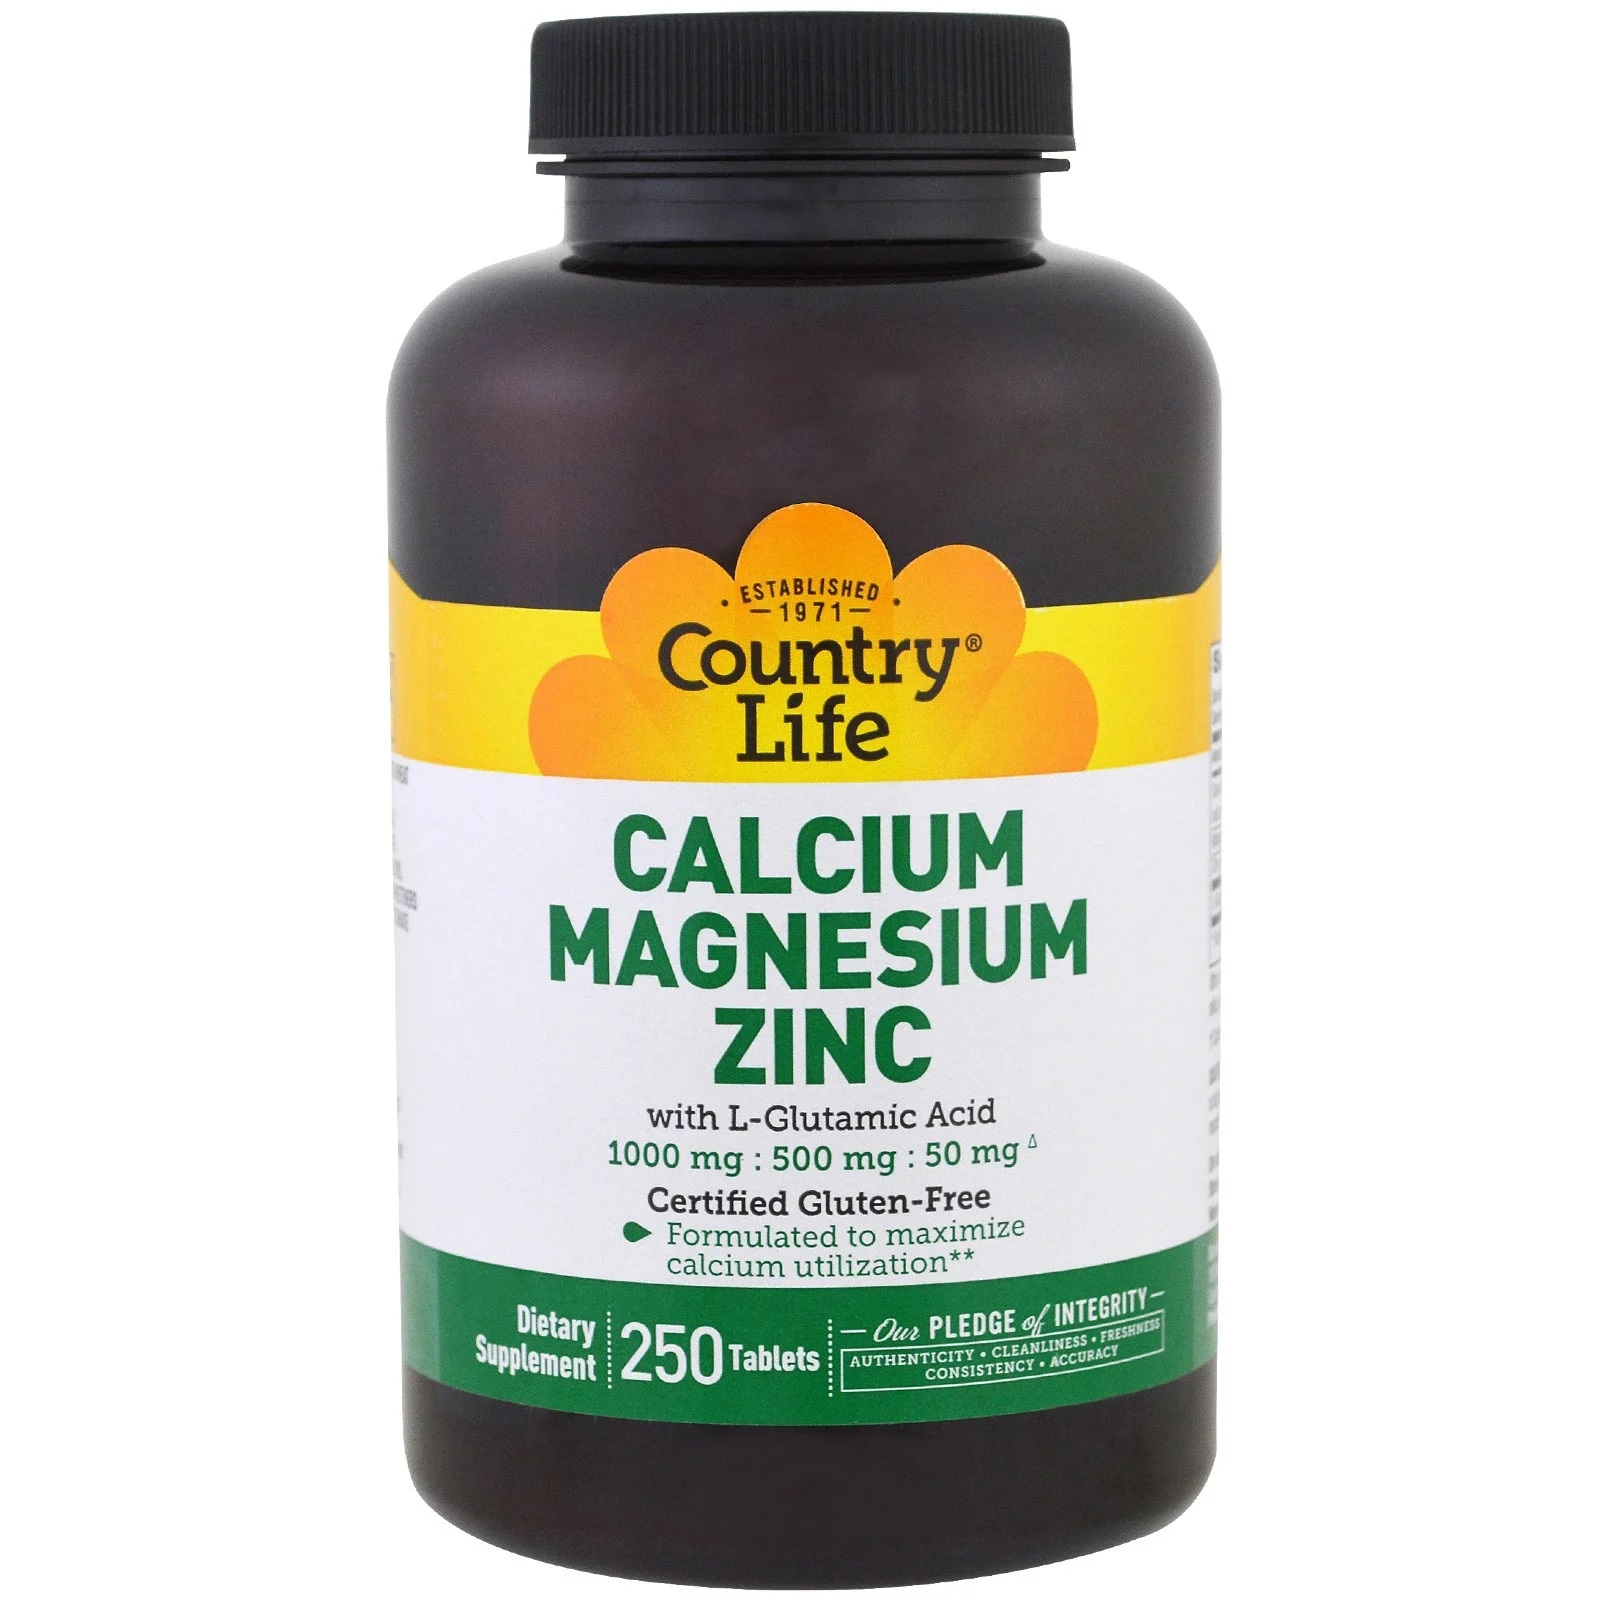 Image of Calcium Magnesium Zinc (250 Tablets) - Country Life